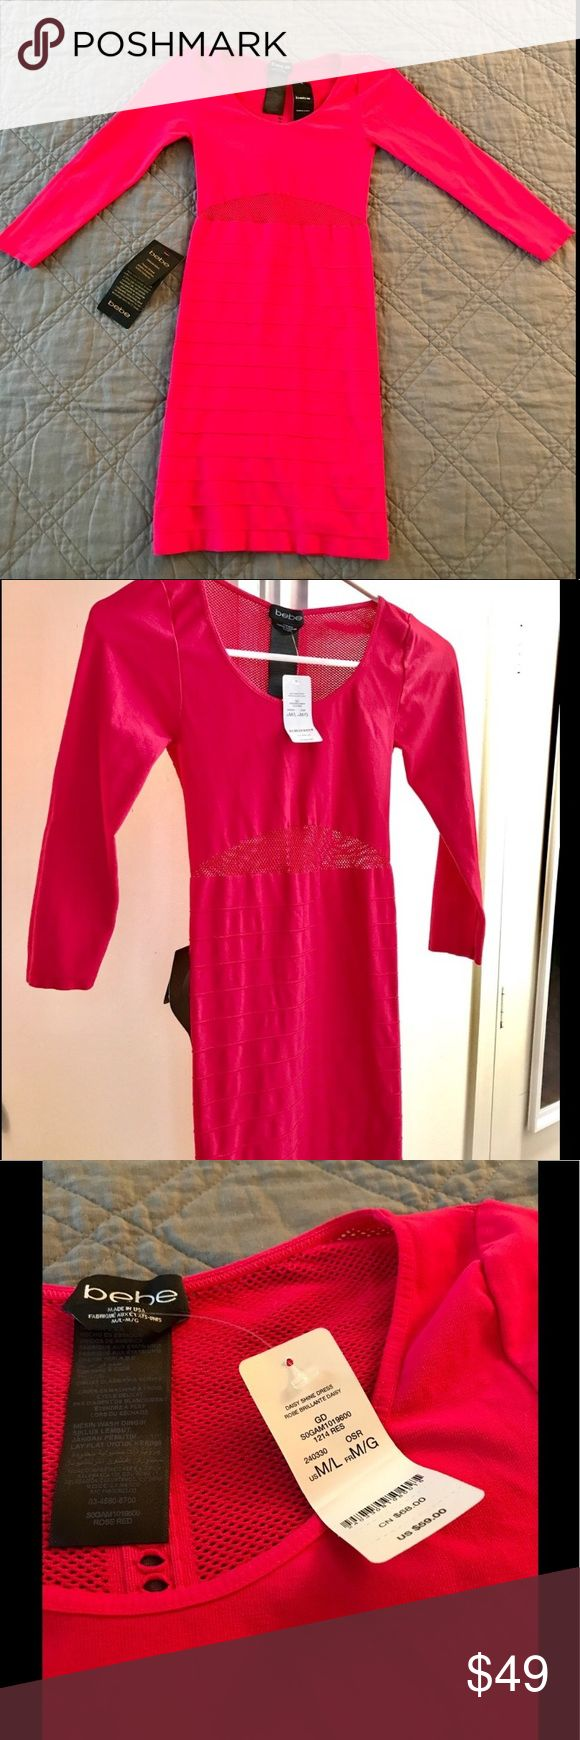 BEBE Bodycon Dress Hot Pink Daisy RARE NEW Hot Pink Daisy Mesh Bebe Bodycon Dress. Excellent for a night out. Size M/L. Original price $59. Rare - Bebe no longer makes it. Vibrant hot pink color. Excellent for a night out. Head-turner and neck-breaker. New with original tags. Gorgeous find! bebe Dresses